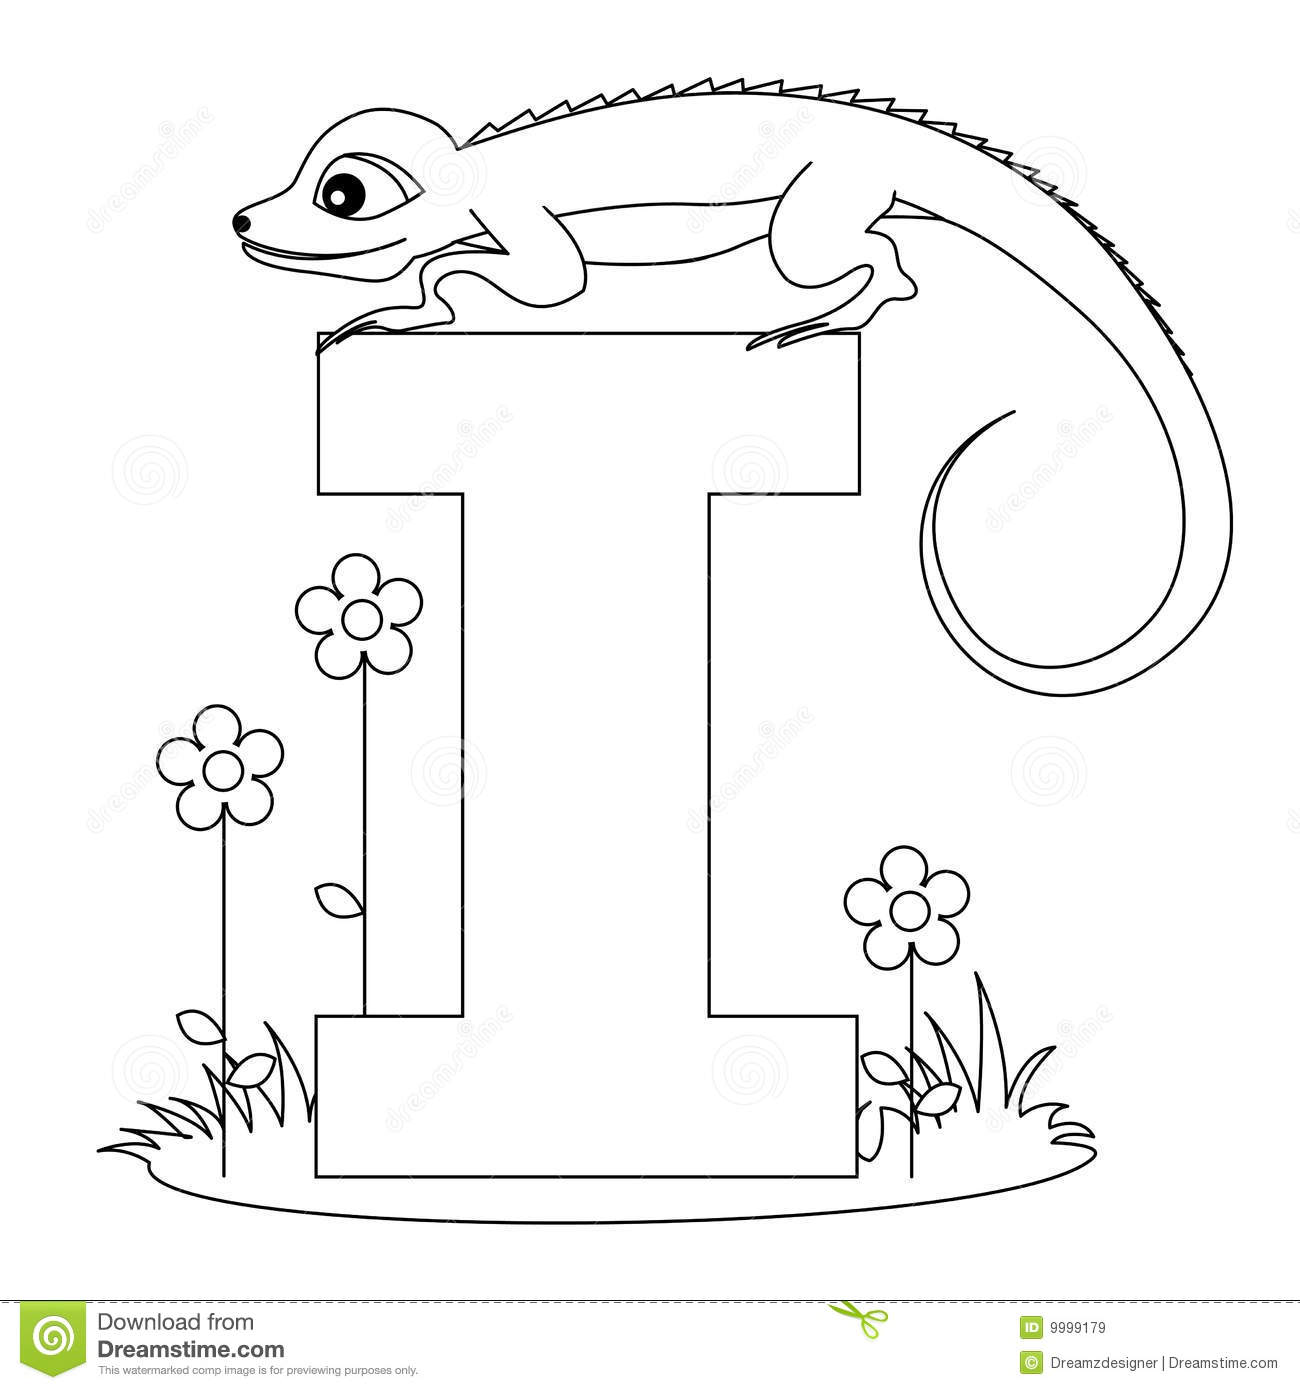 Animal Alphabet I Coloring Page Royalty Free Stock Images ...